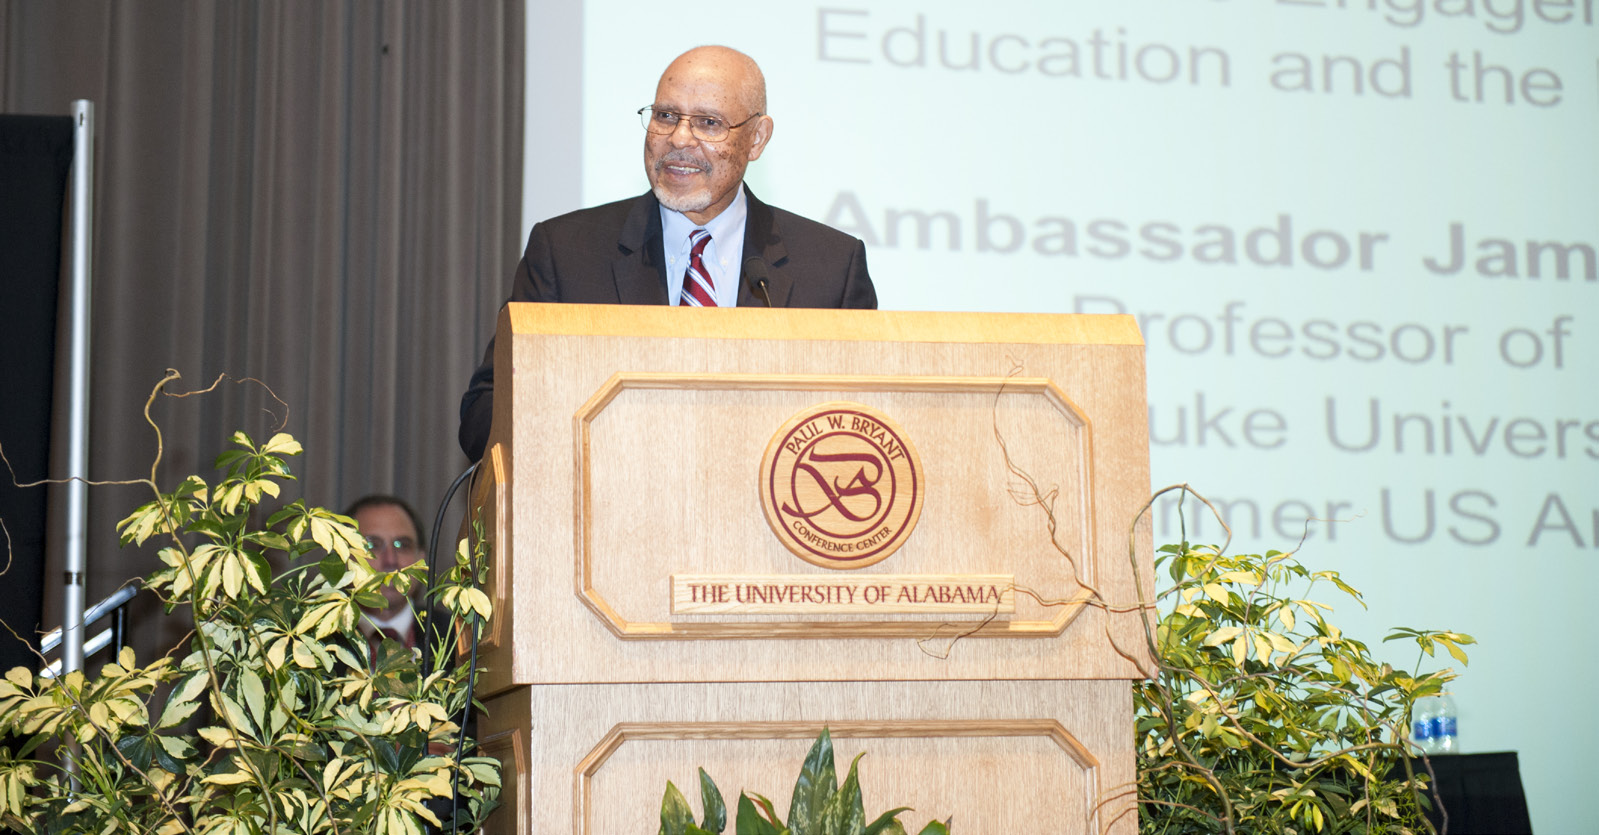 Ambassador James A. Joseph presenting the Keynote Address at NOSC 2012 at The University of Alabama.